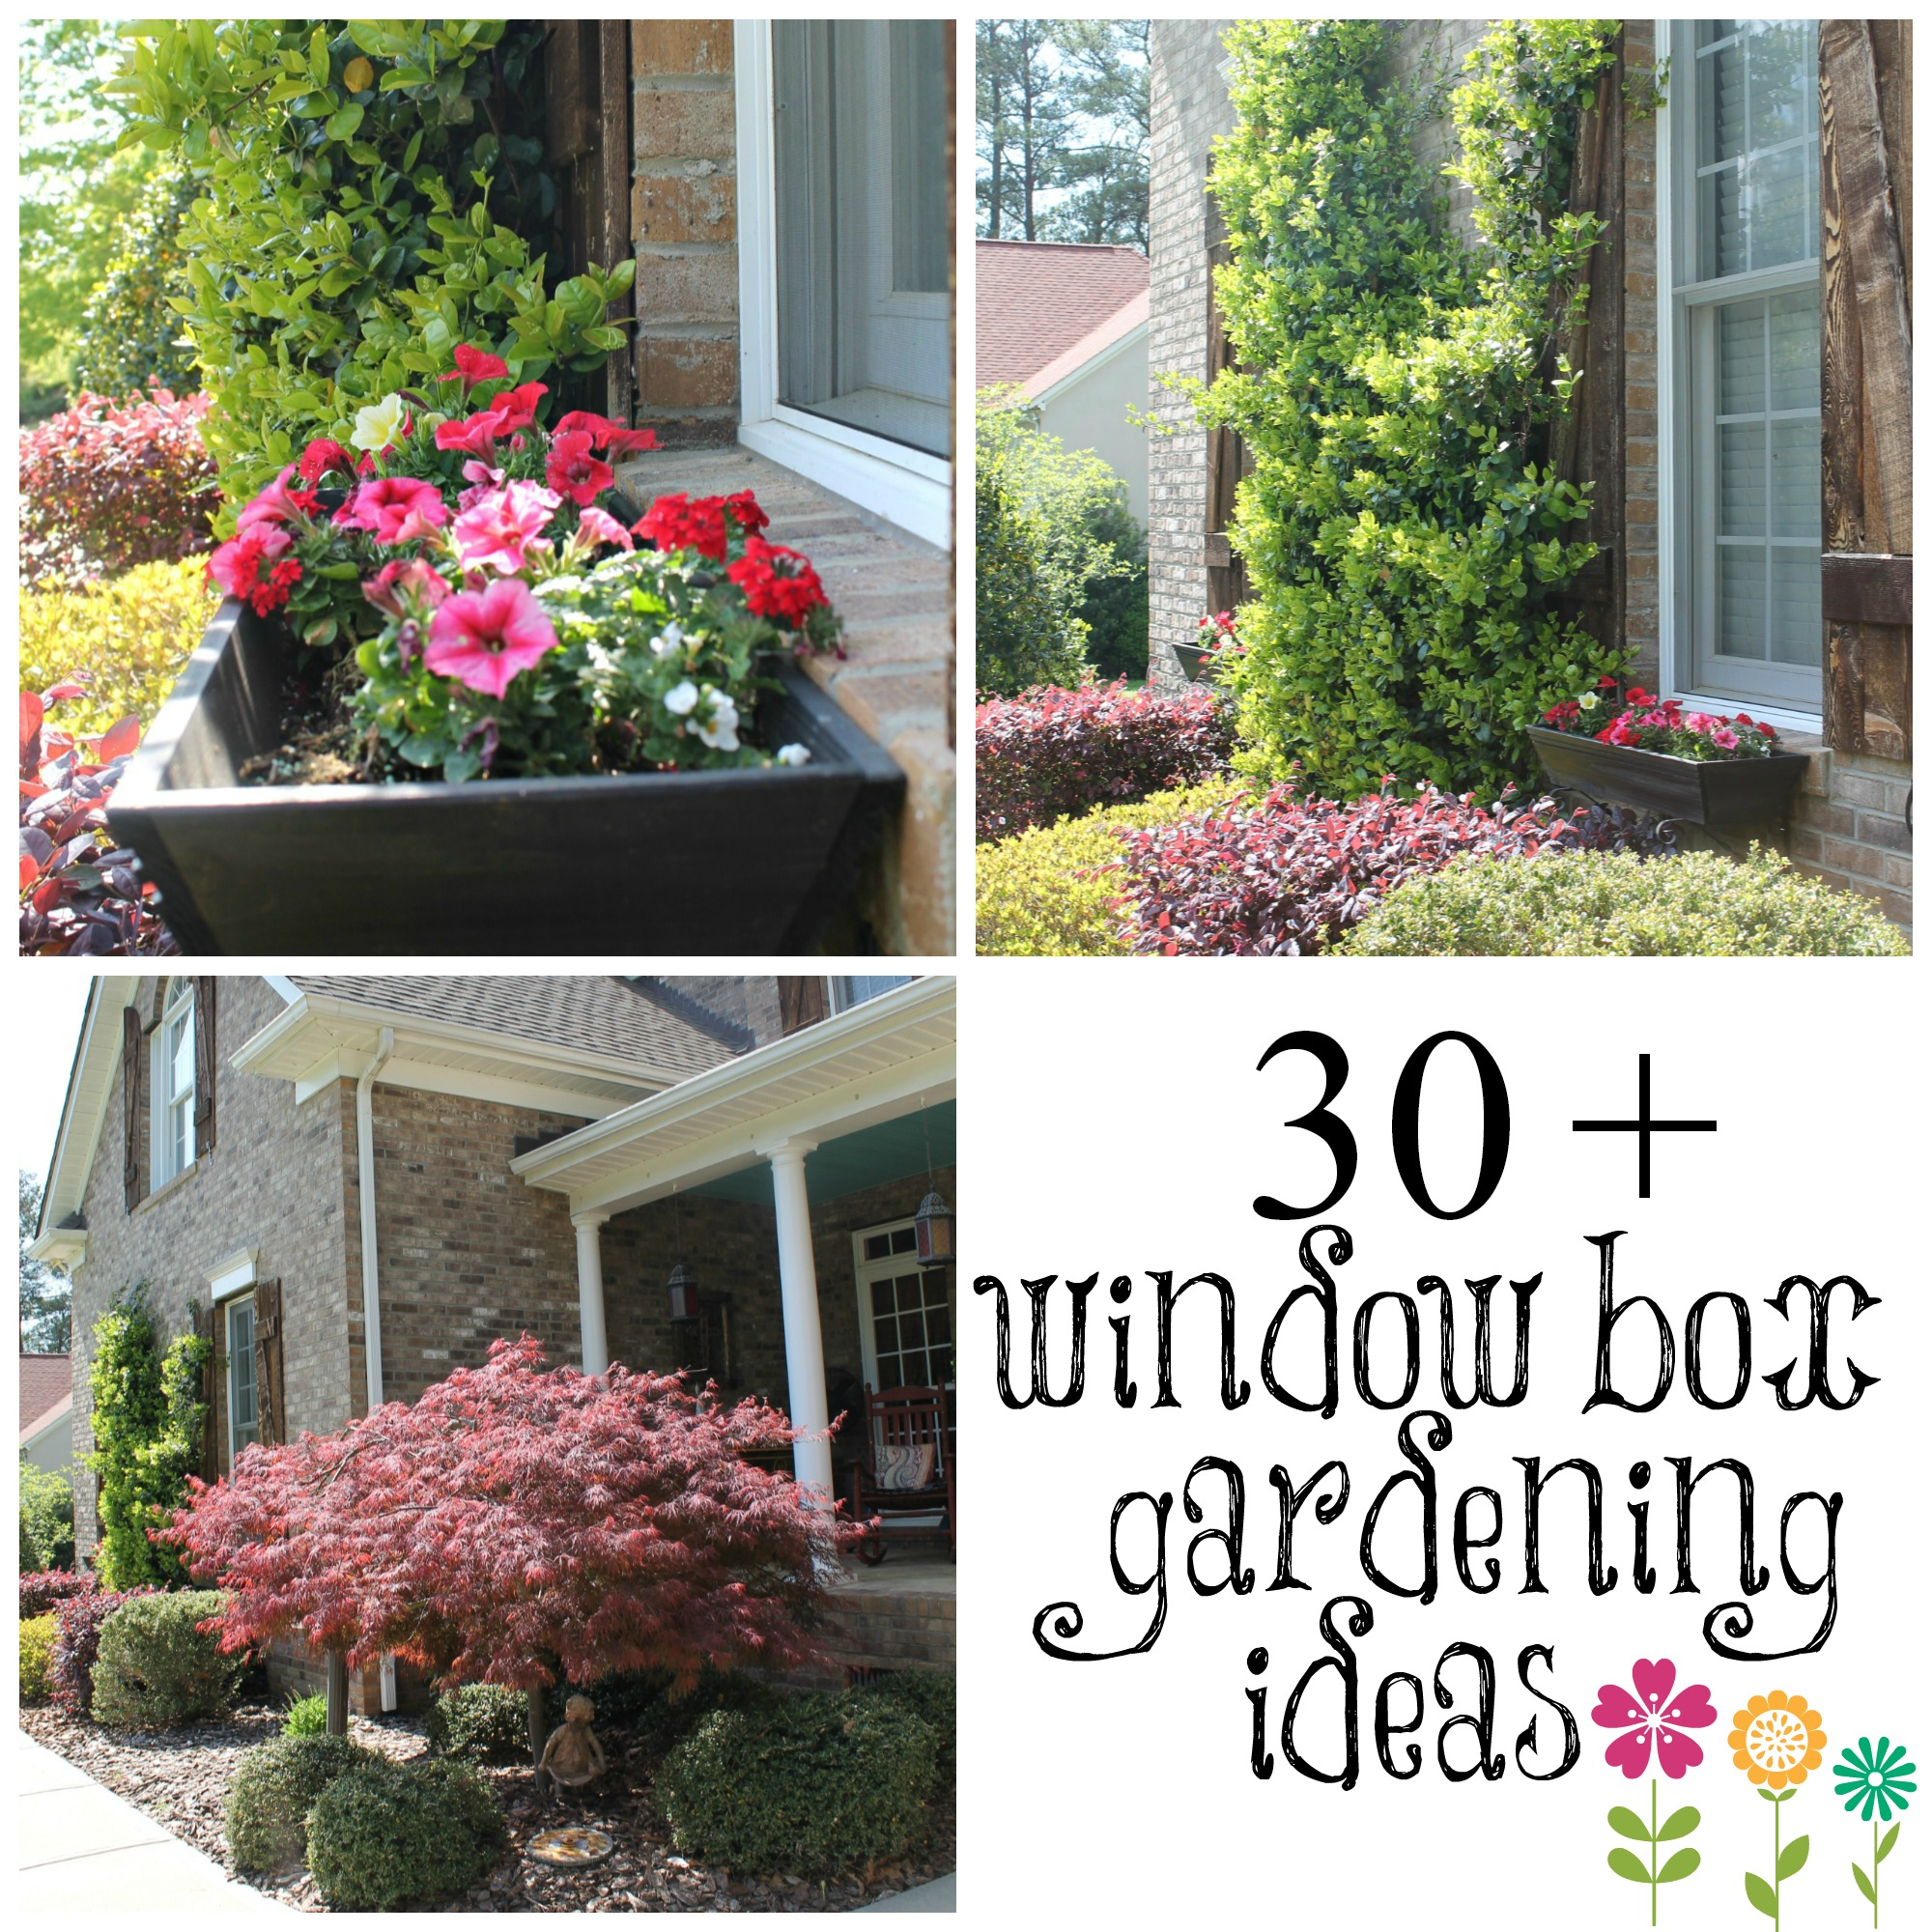 Wow your windows with window boxes debbiedoos for Flower garden box ideas